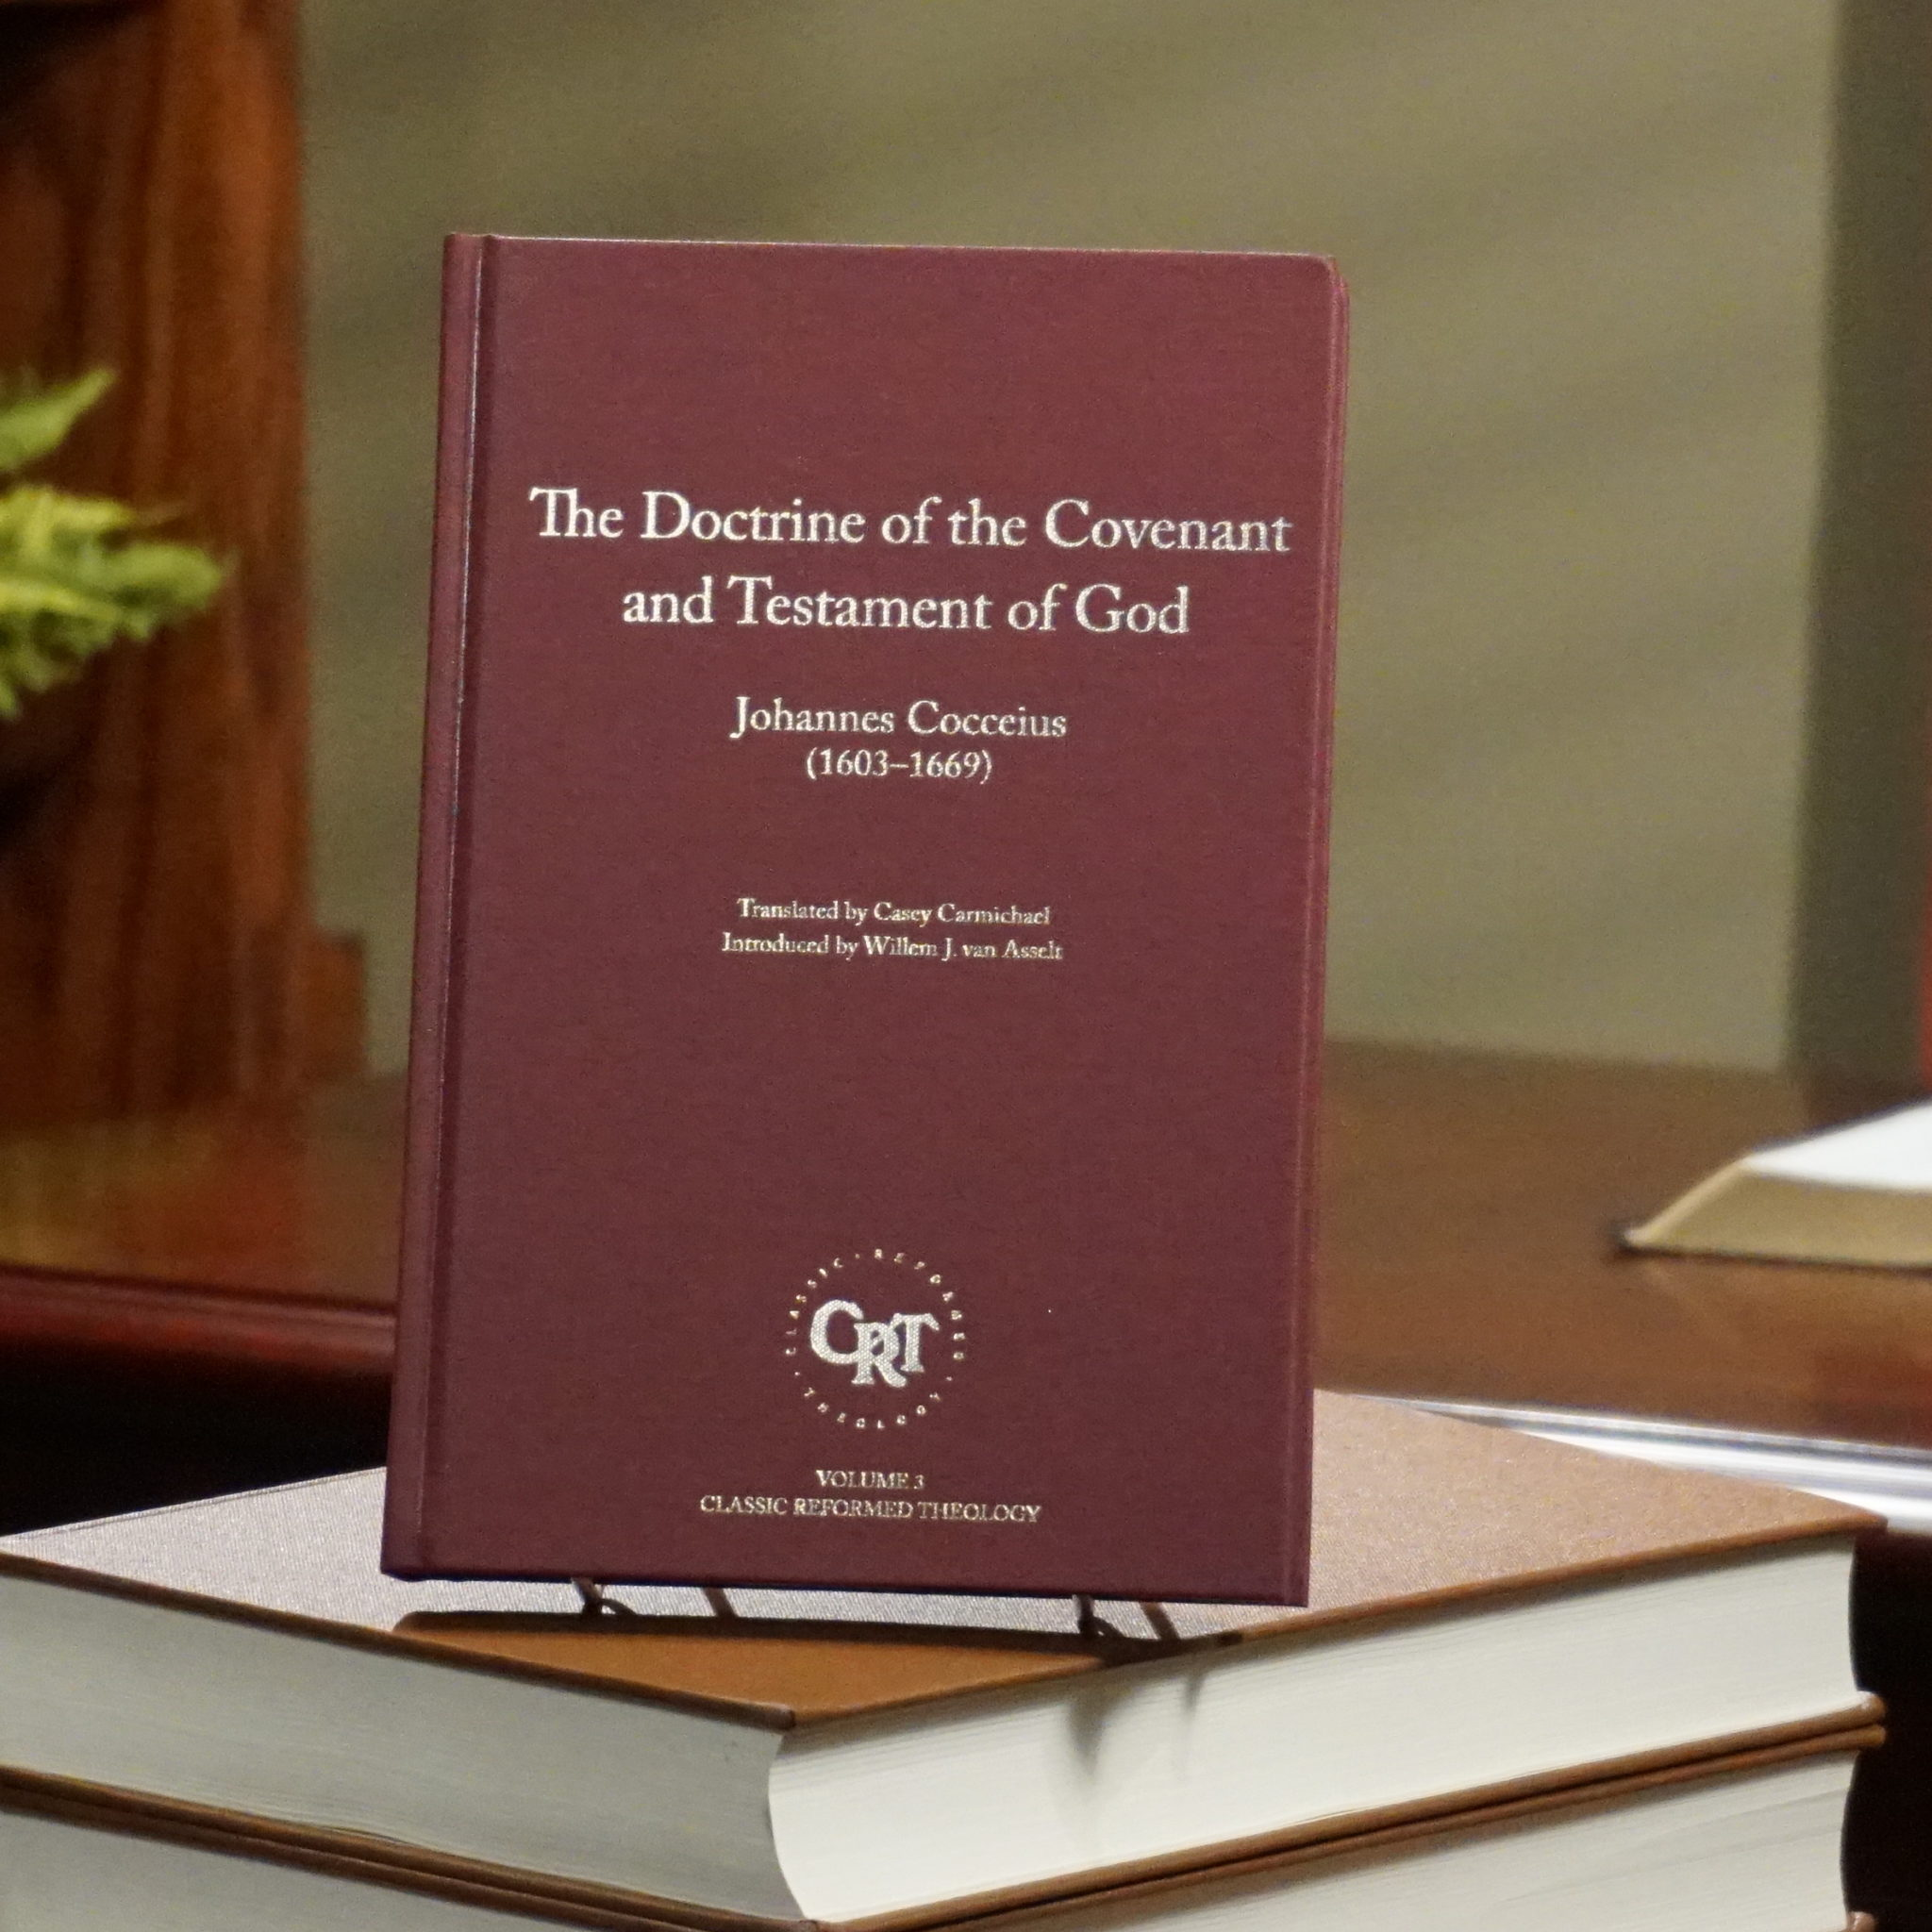 The Doctrine of the Covenant and Testament of God (Johannes Cocceius